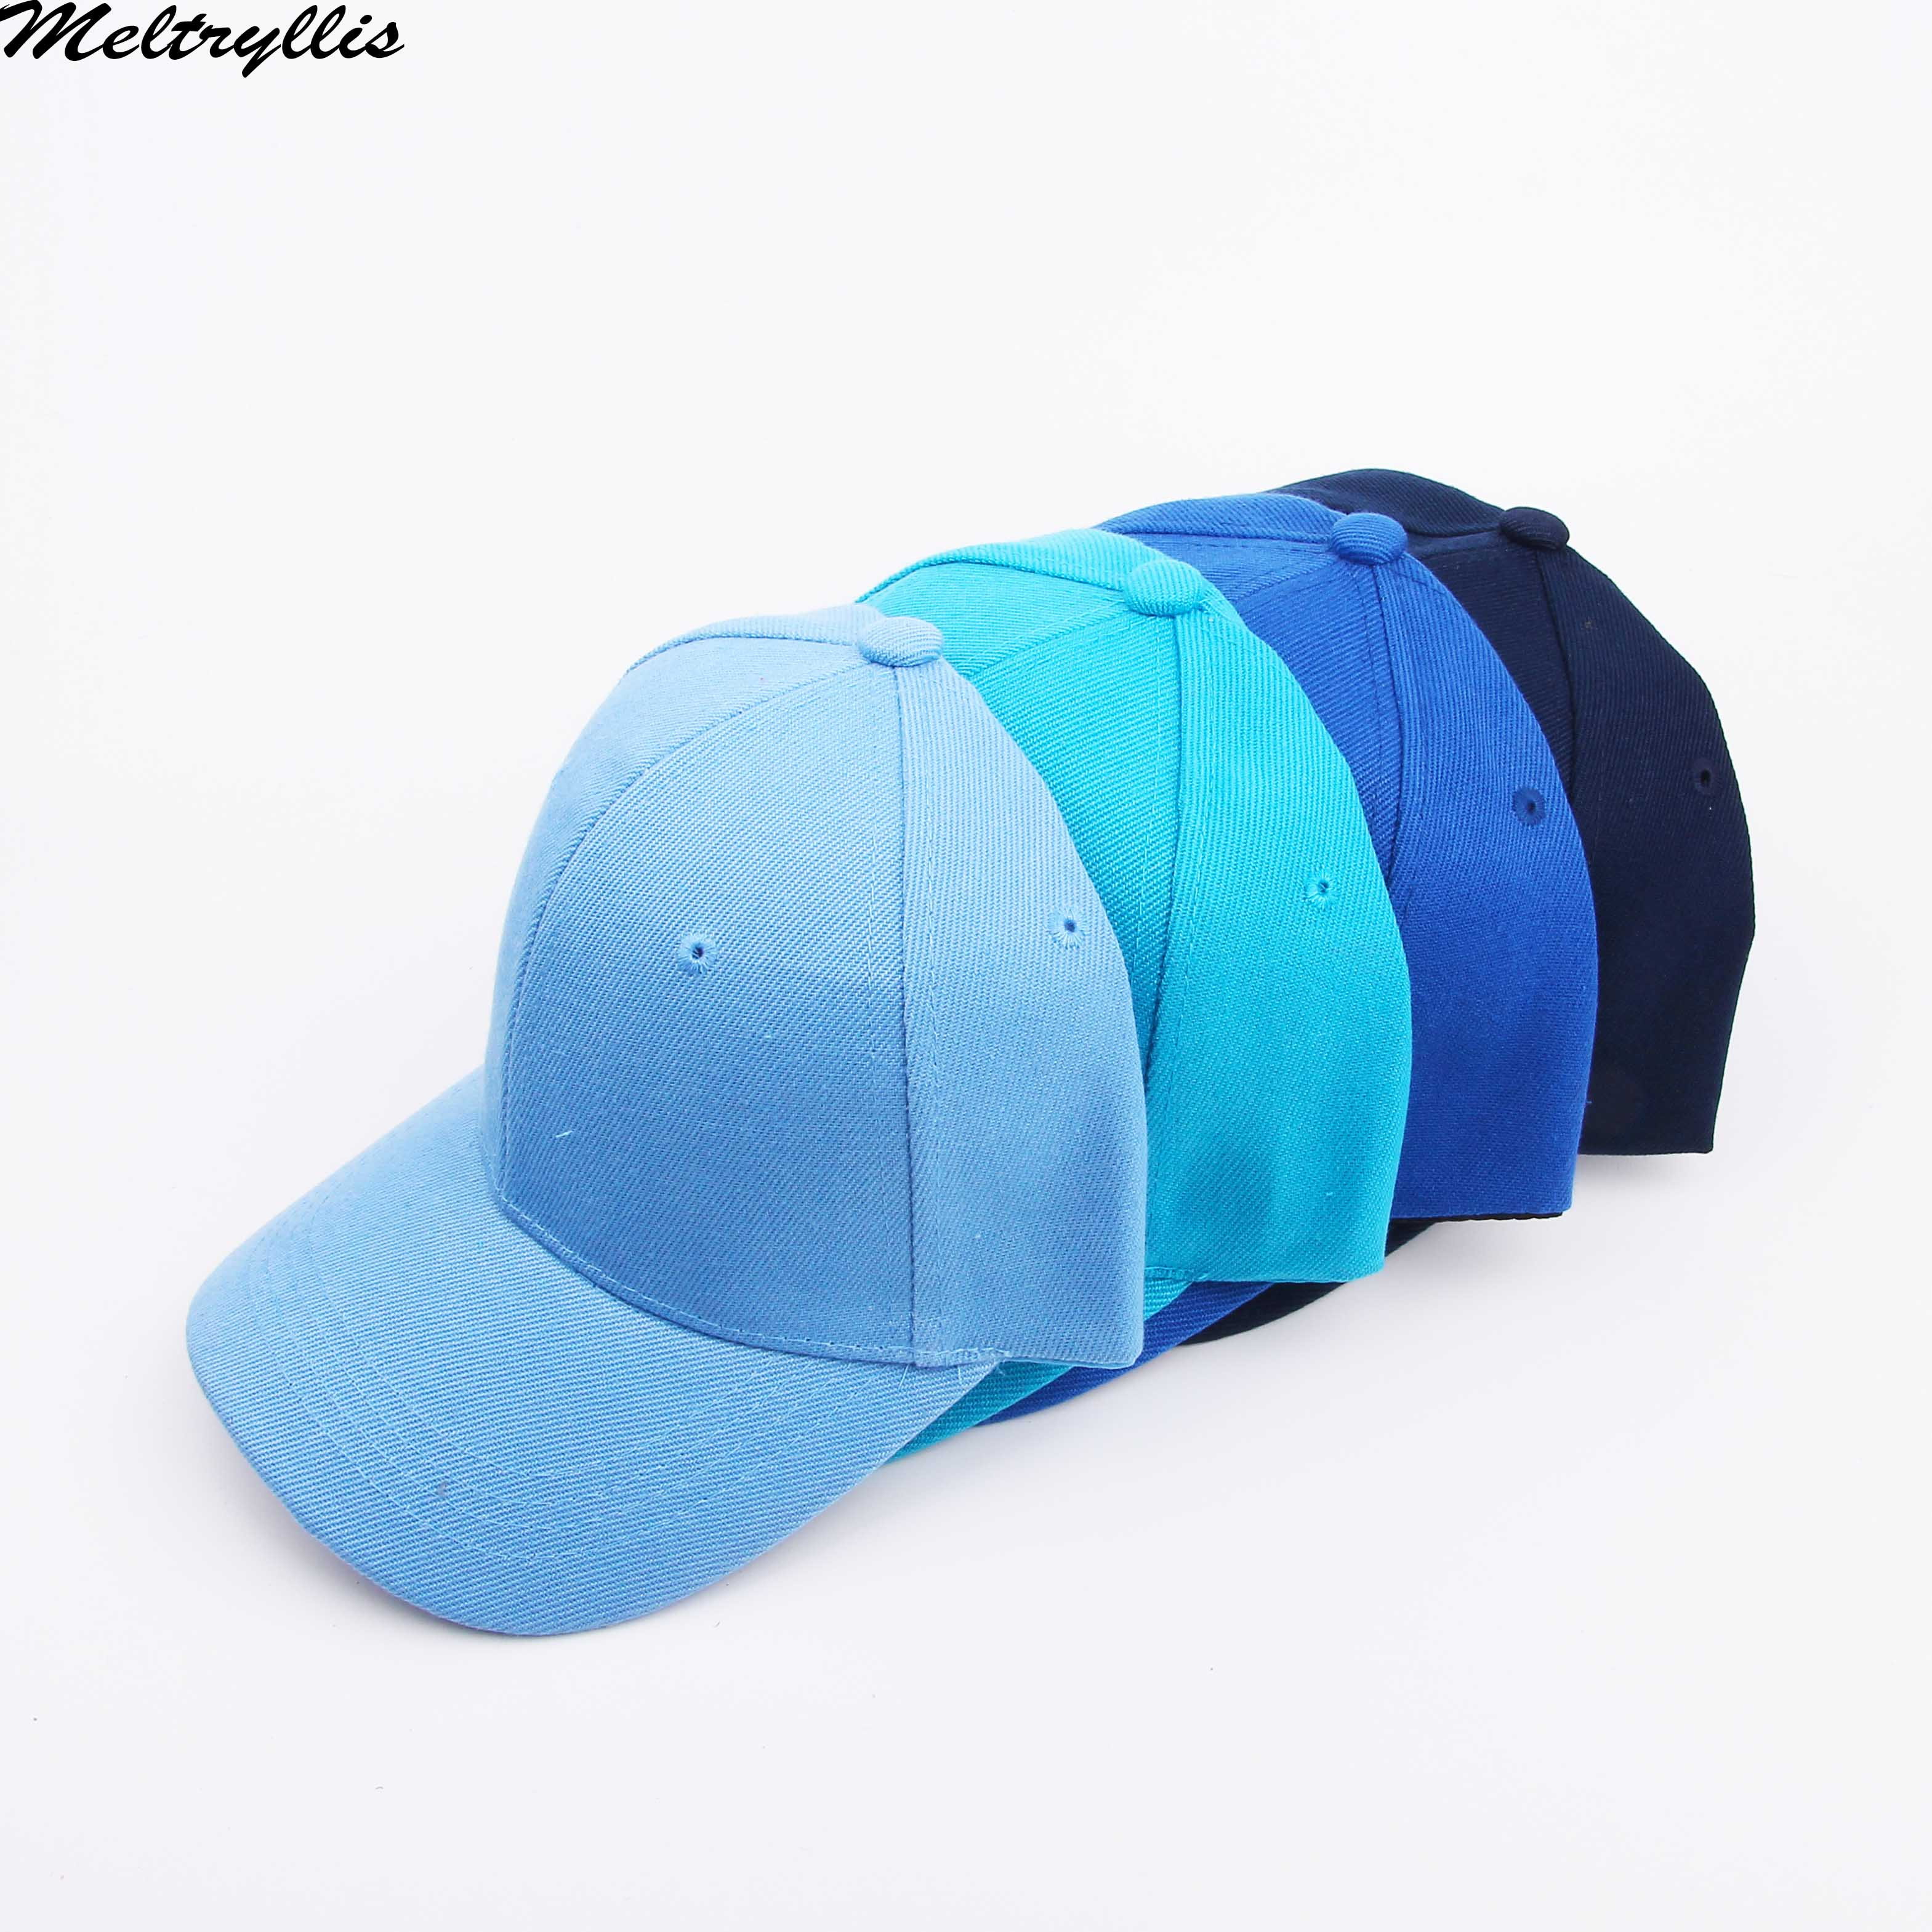 [Meltryllis] Navy Summer Baseball Cap High Quality Cotton Adjustable Blue-colored Items Caps Dad Hat Outdoor Hats For Men Women